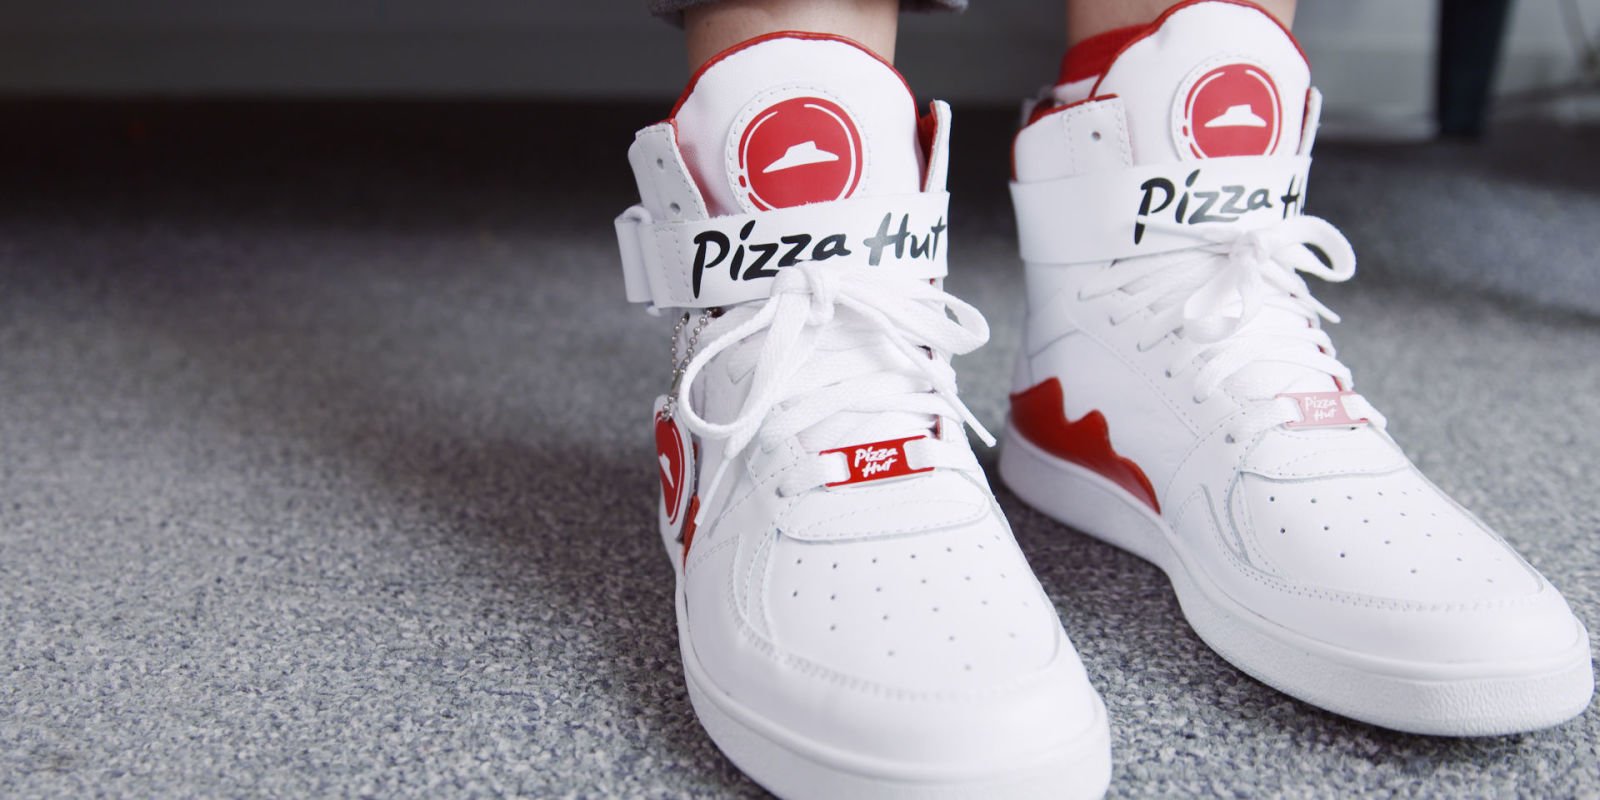 These Sneakers Will Order Pizza Hut For You